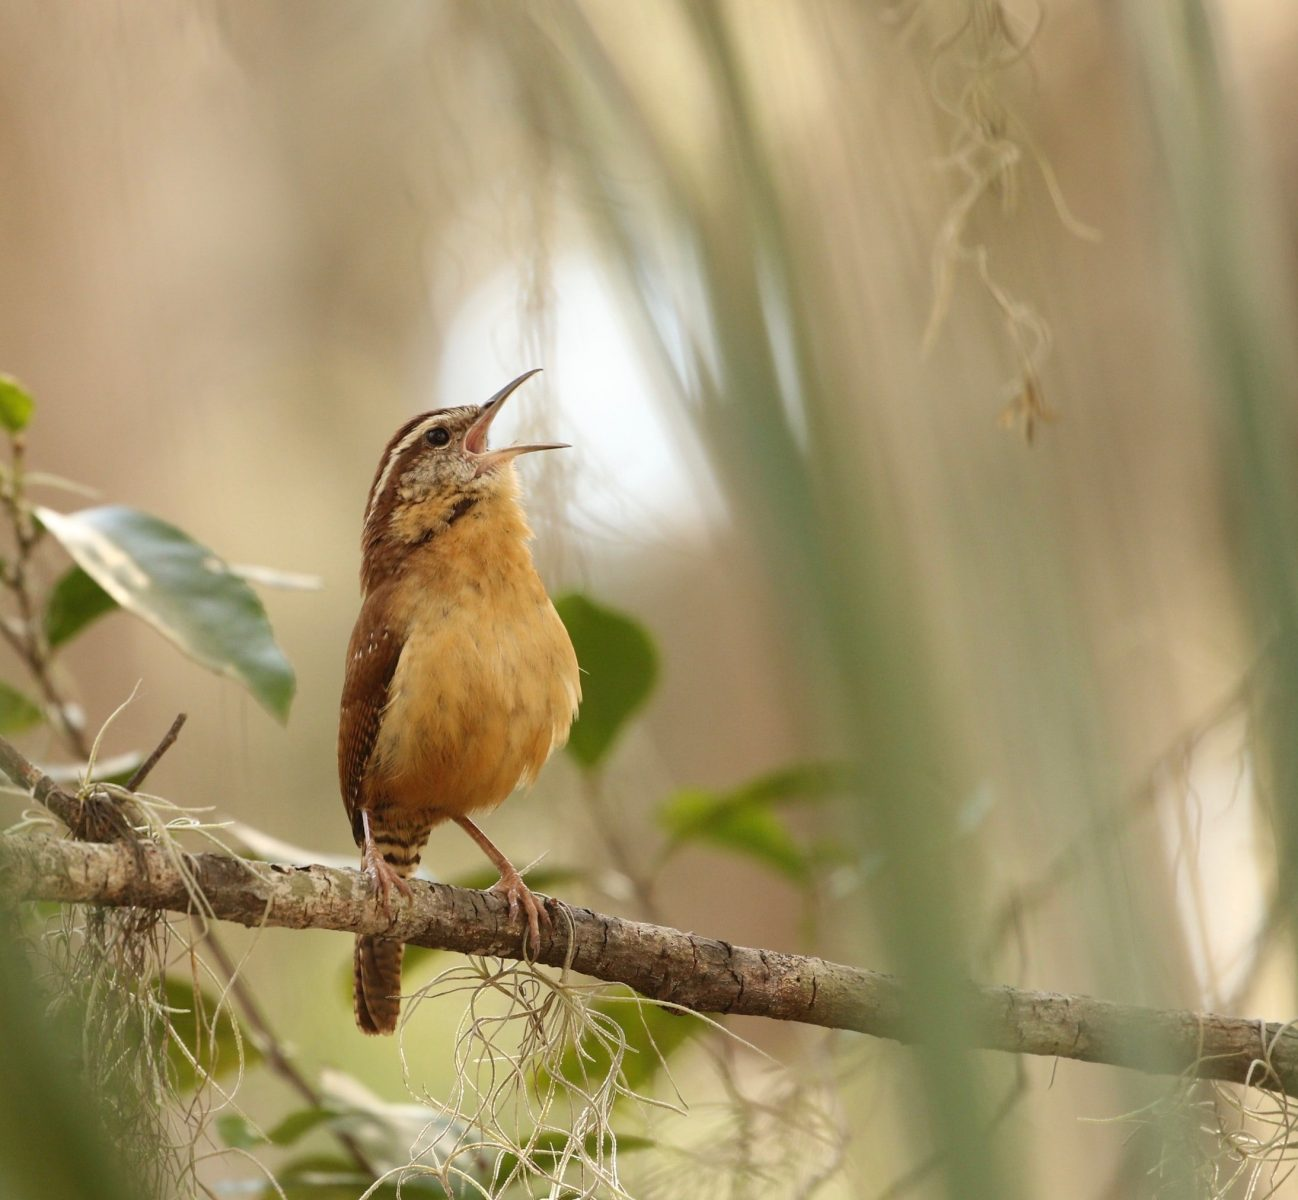 Robin singing: selective focus photography of yellow and brown bird standing on tree branch during daytime